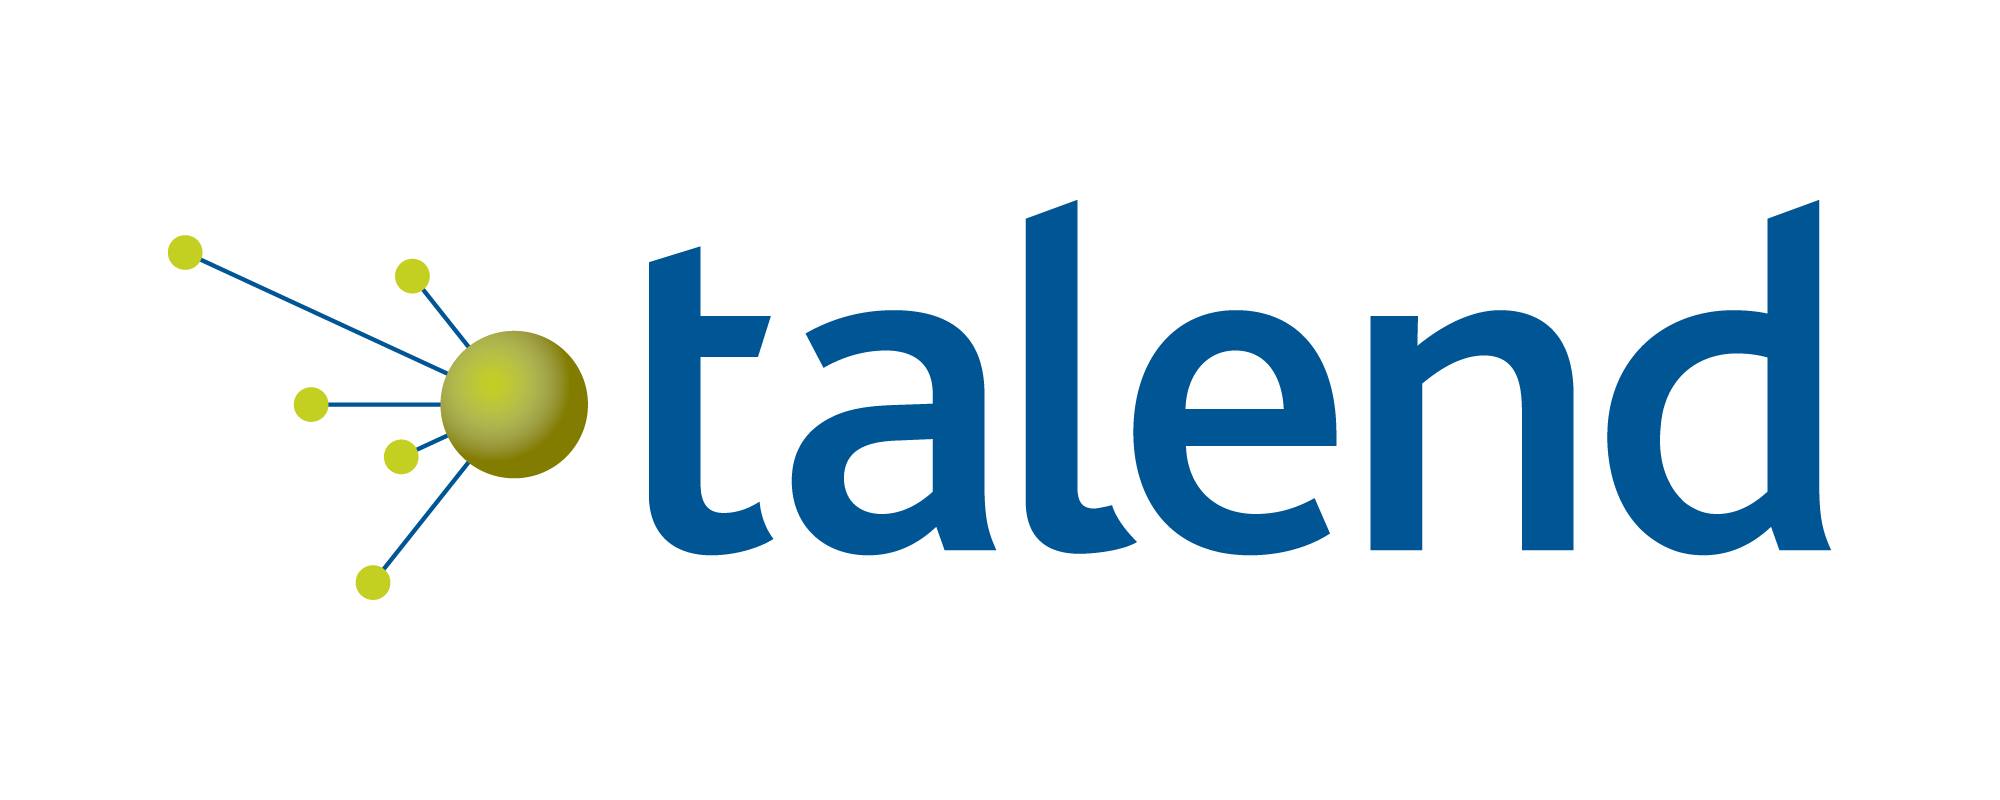 20150106111902!Logo-talend-high (1).png